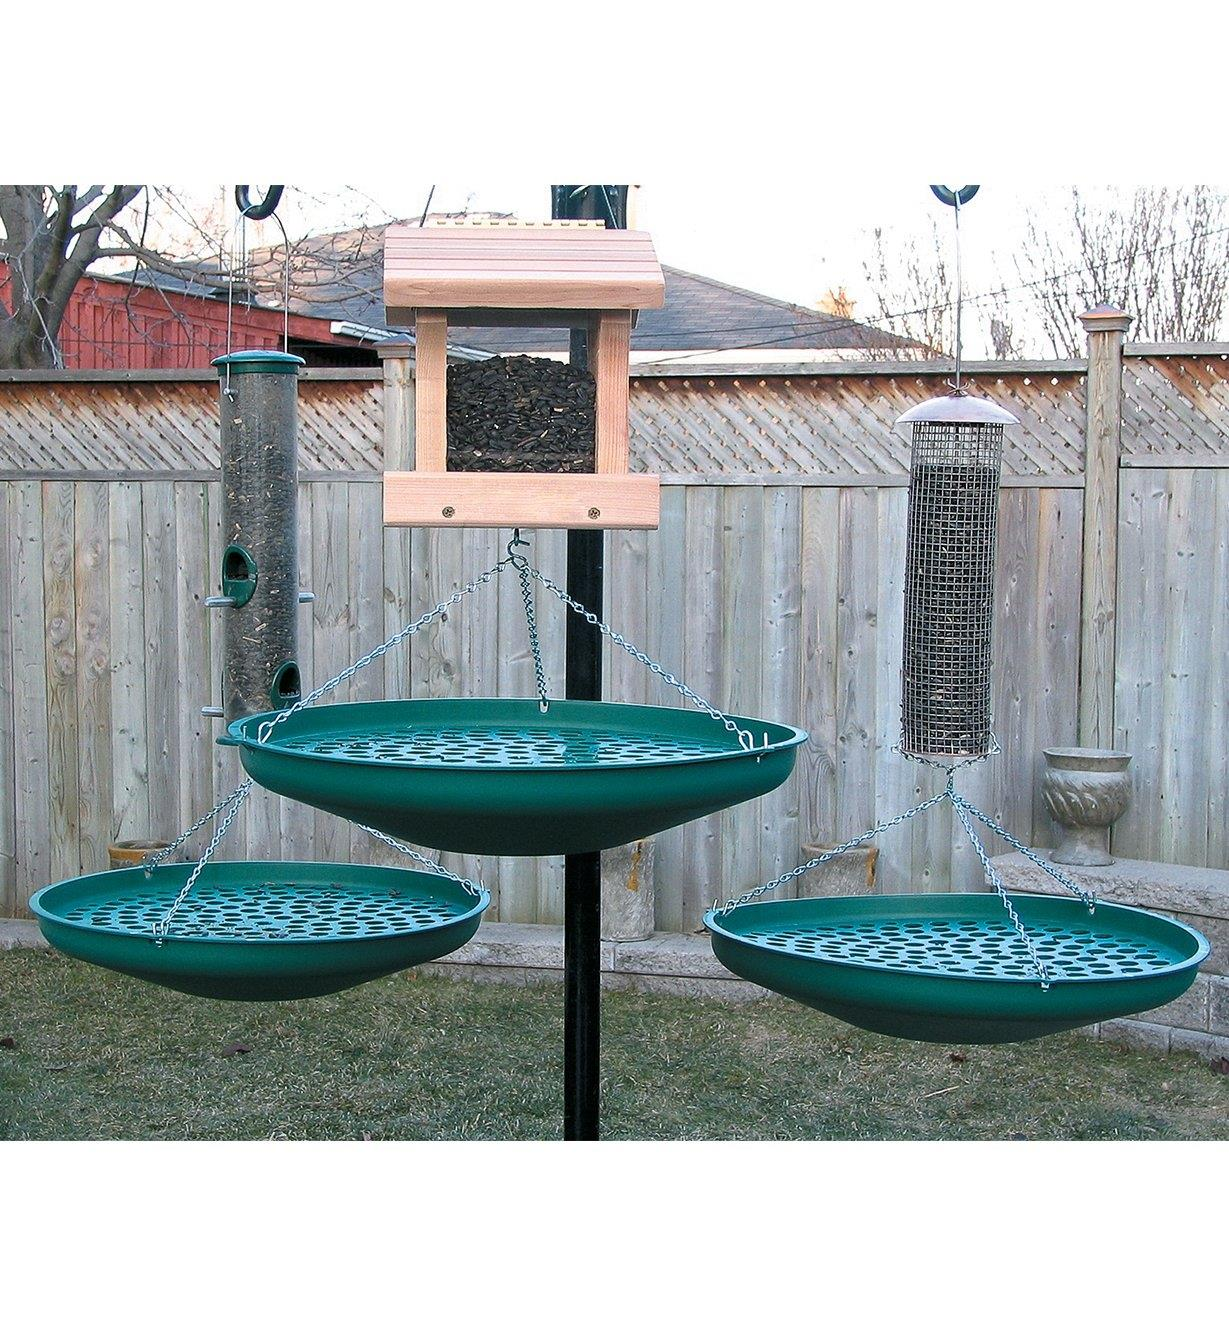 Three Seed Saucers hanging under a bird house and two tube feeders